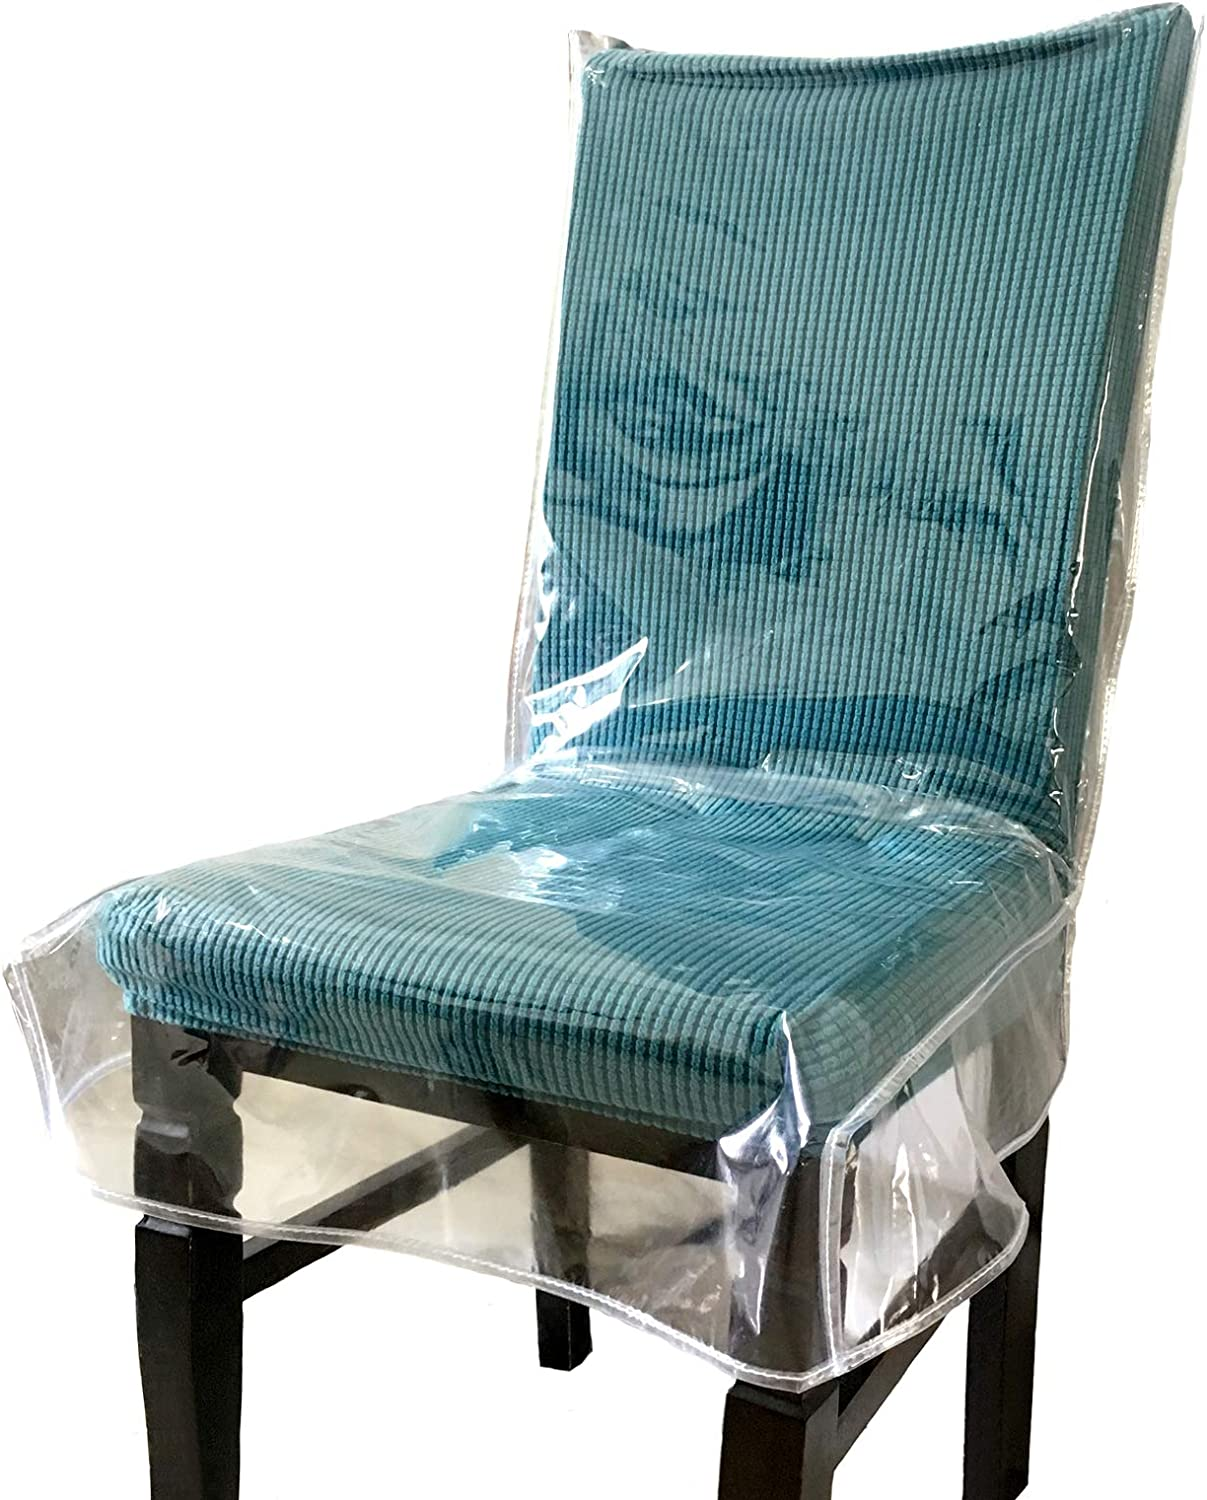 Swanna Plastic Dining Chair Covers, How To Cover Dining Room Chairs With Plastic